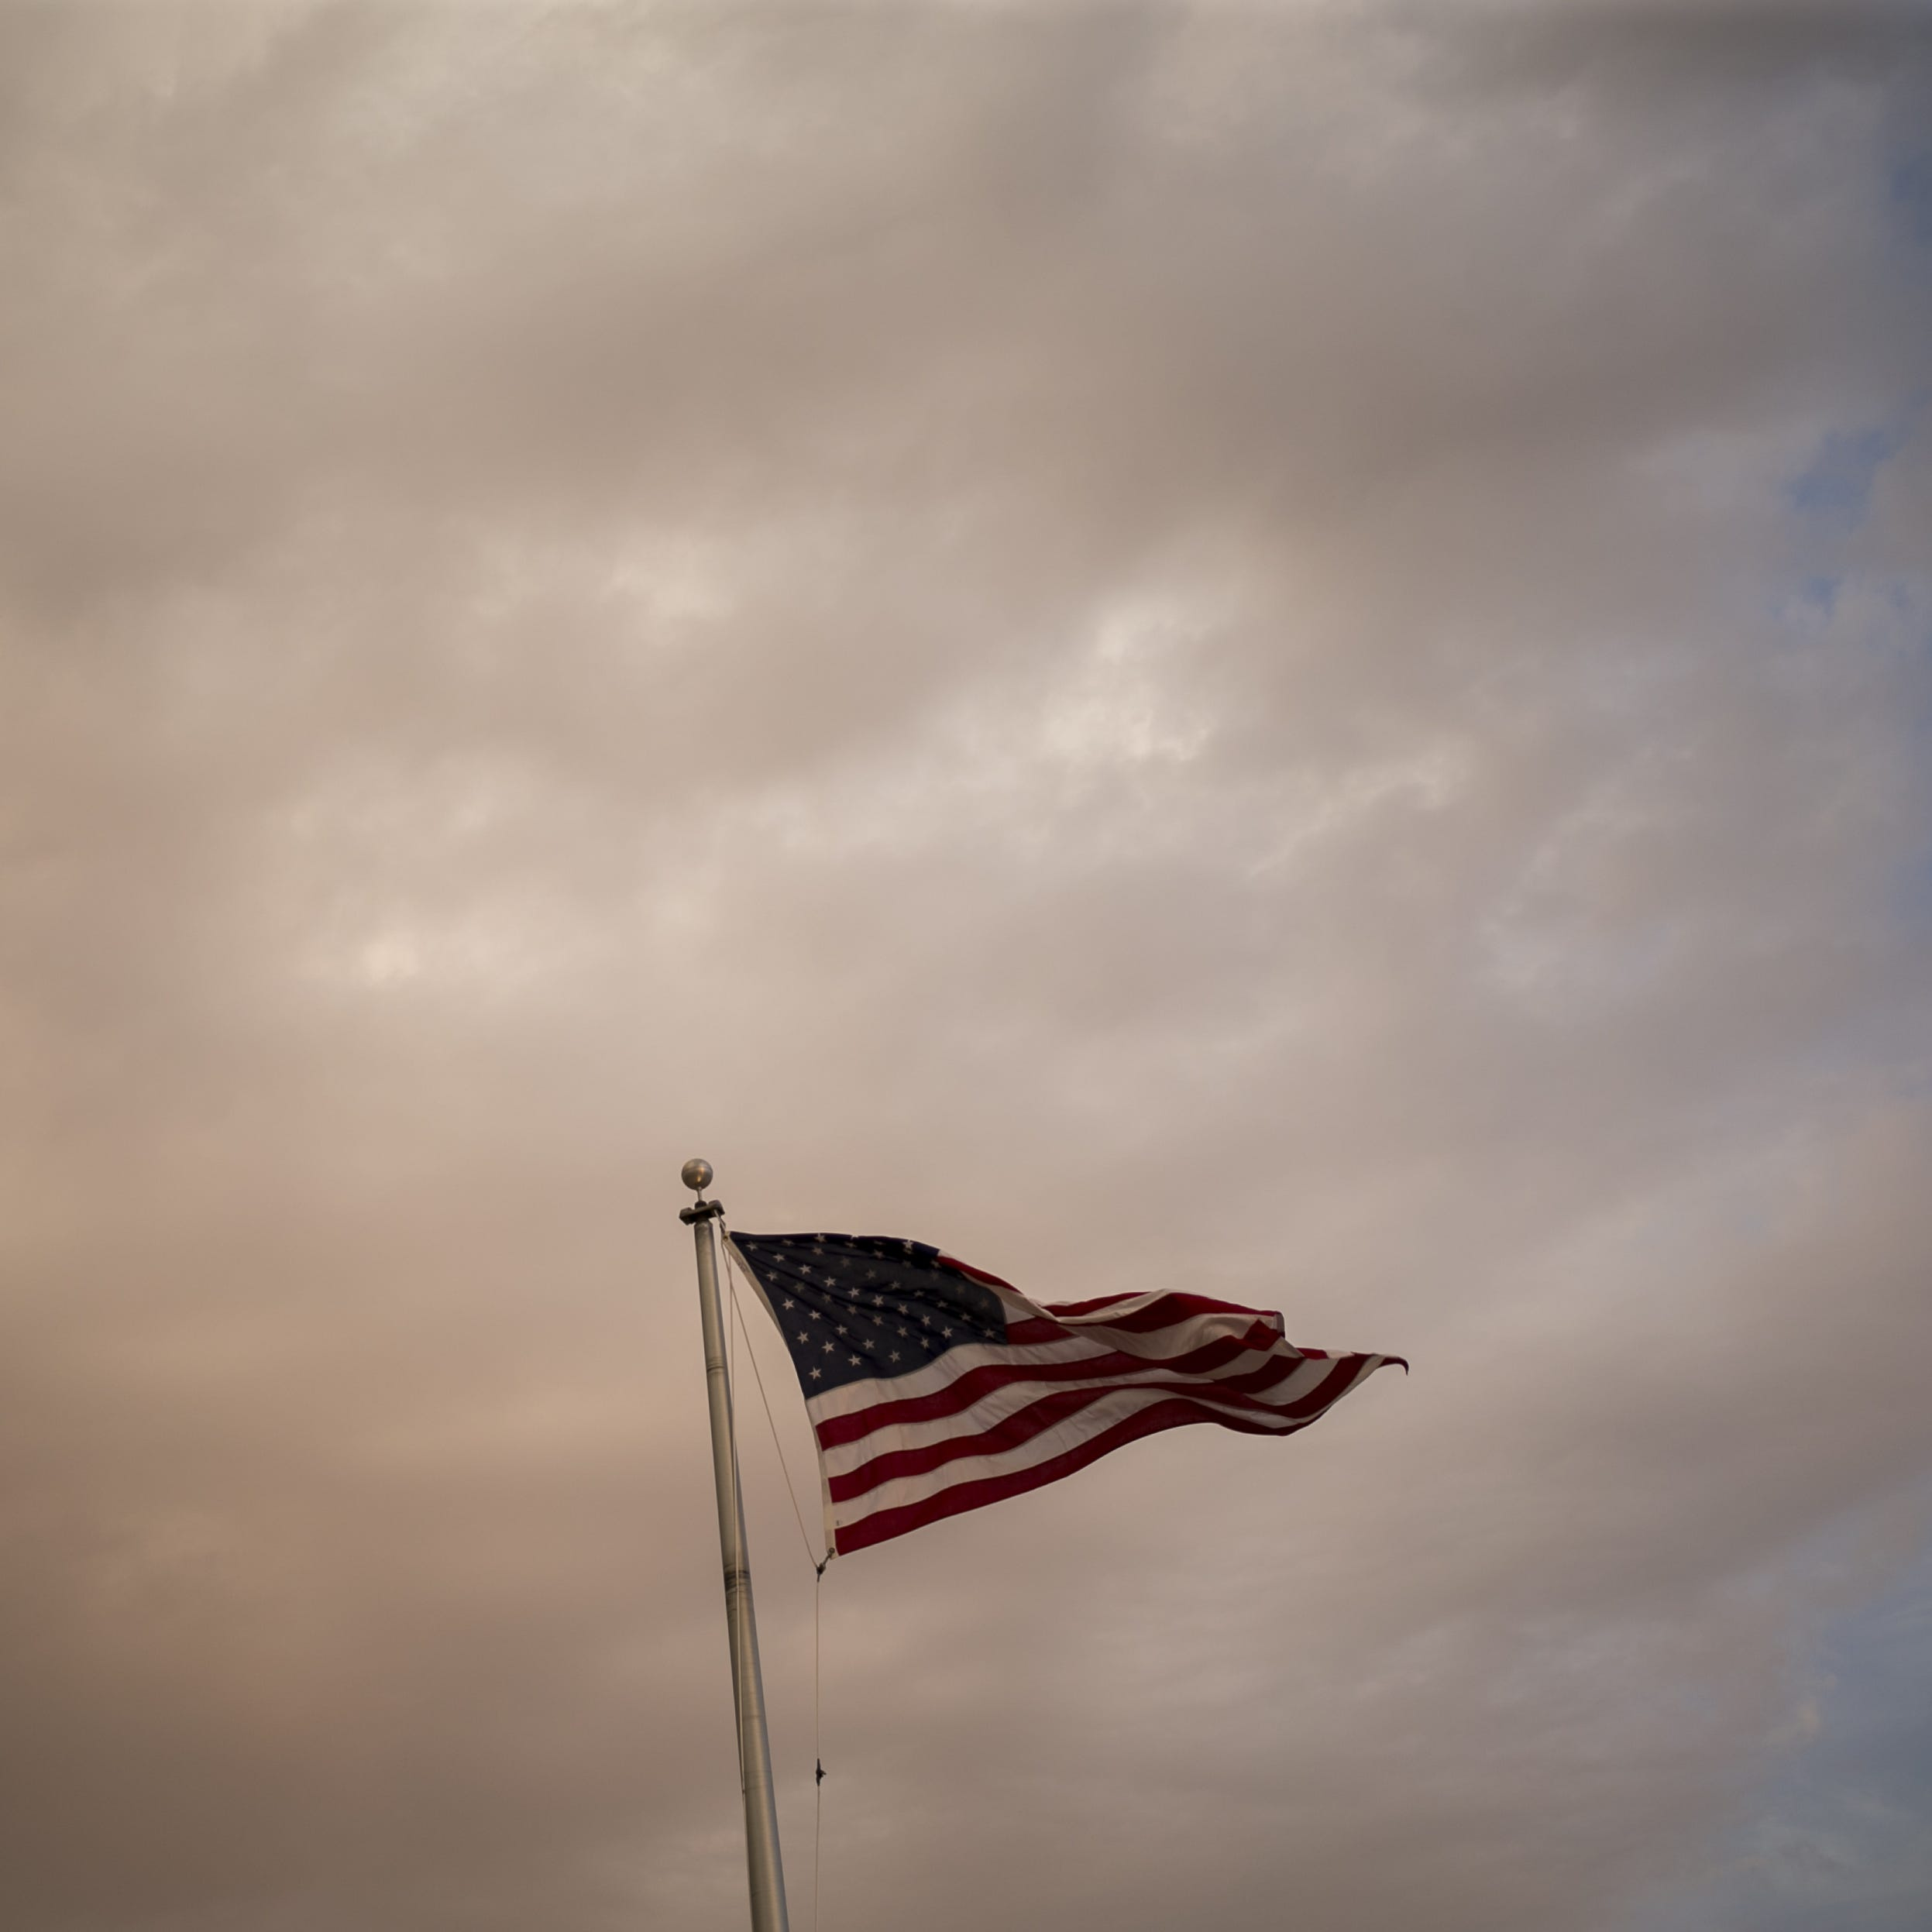 Strong winds expected across Arizona this week with gusts reaching 40, 50 mph